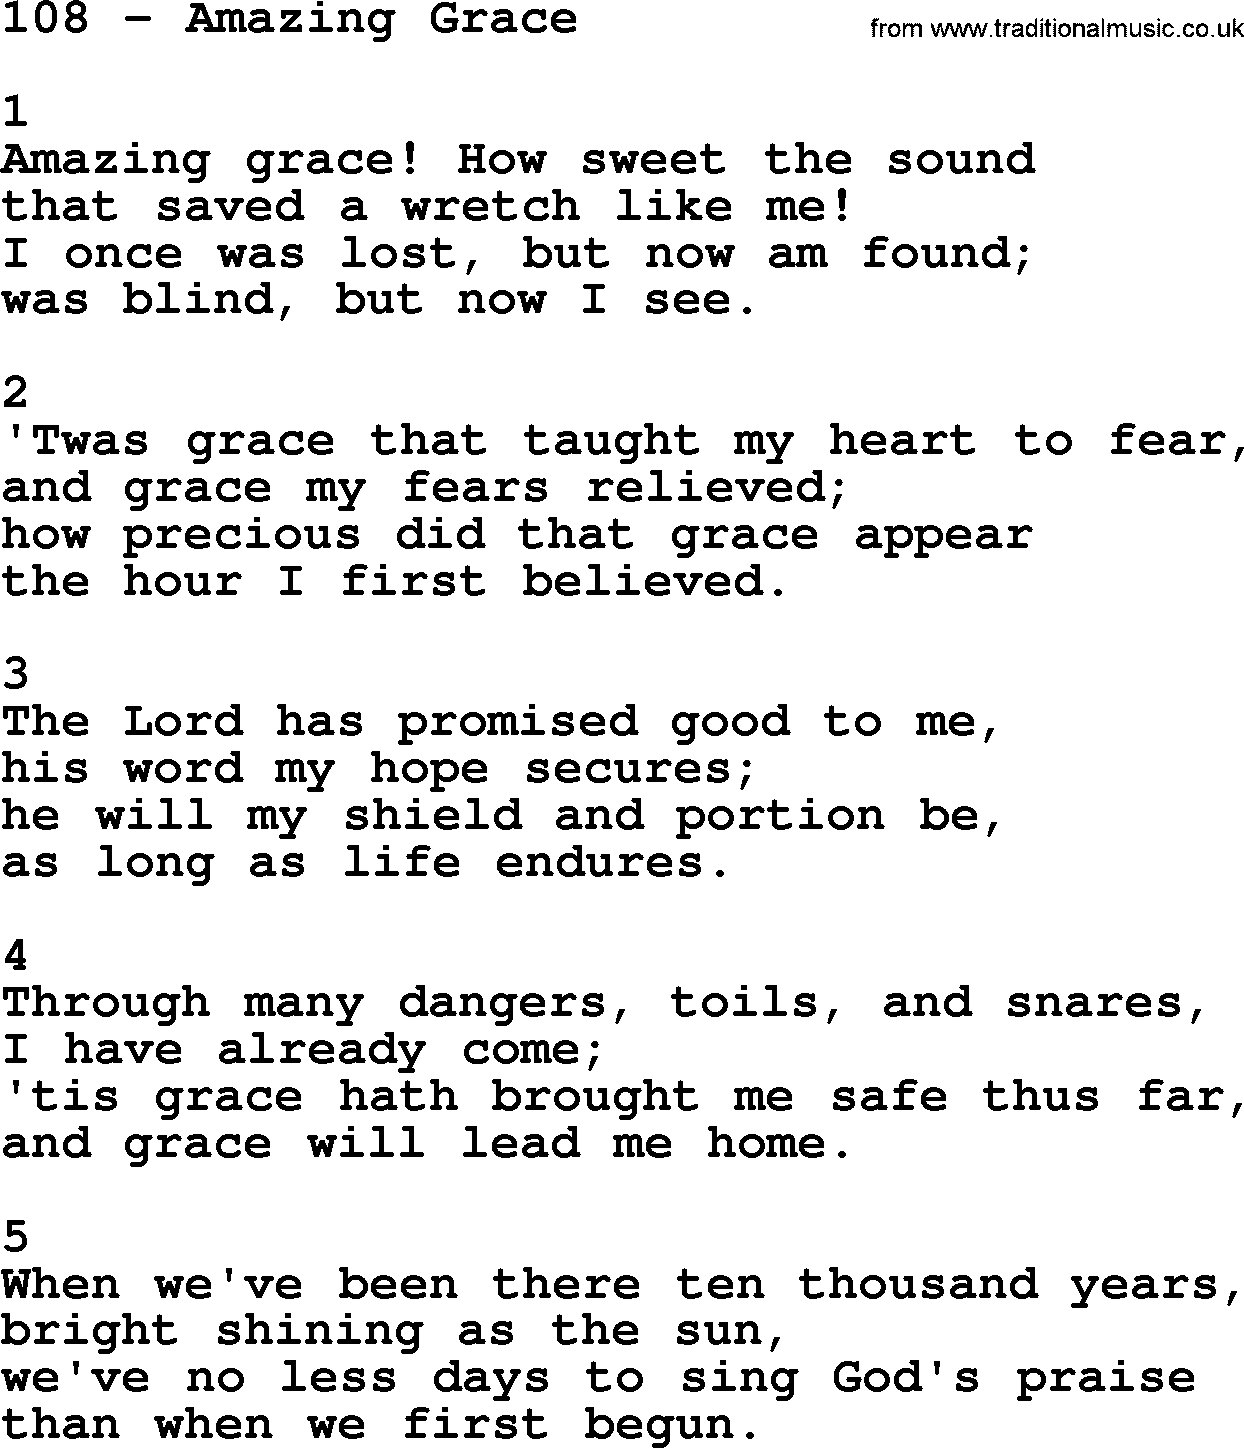 Amazing Grace: Adventist Hymnal, Song: 108-Amazing Grace, With Lyrics